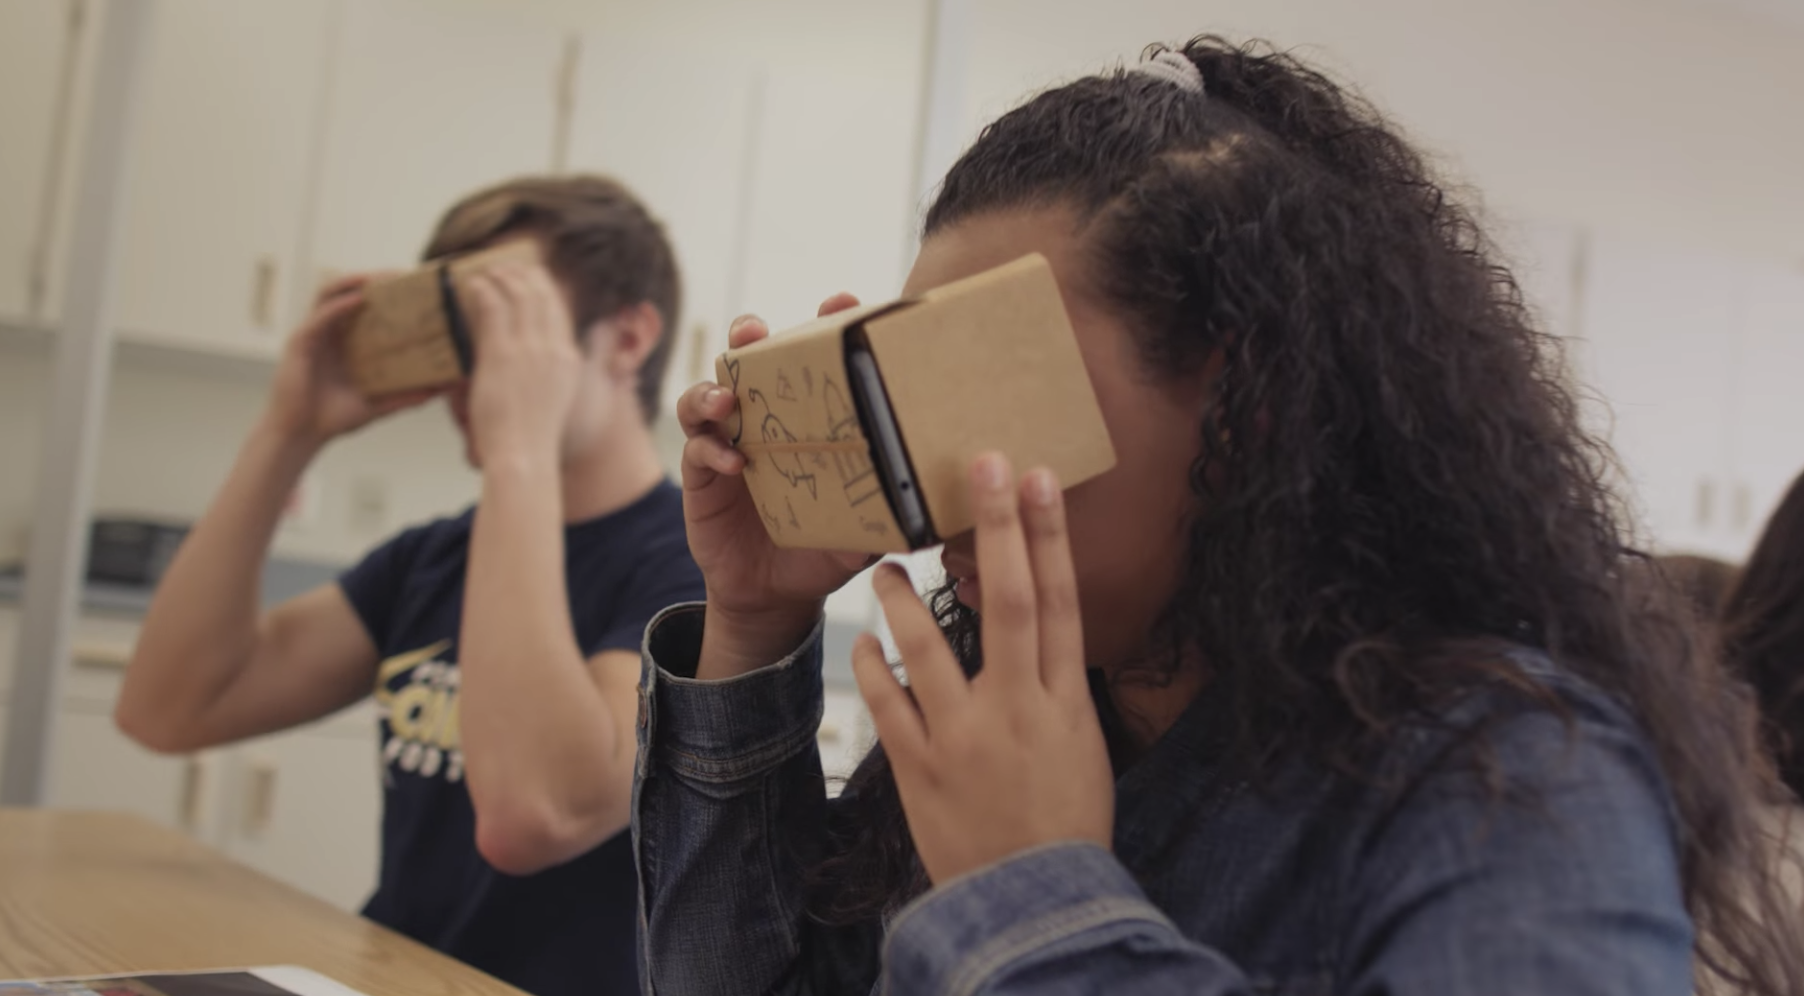 Kids Can Create Their own VR Tours With Google Tour Creator